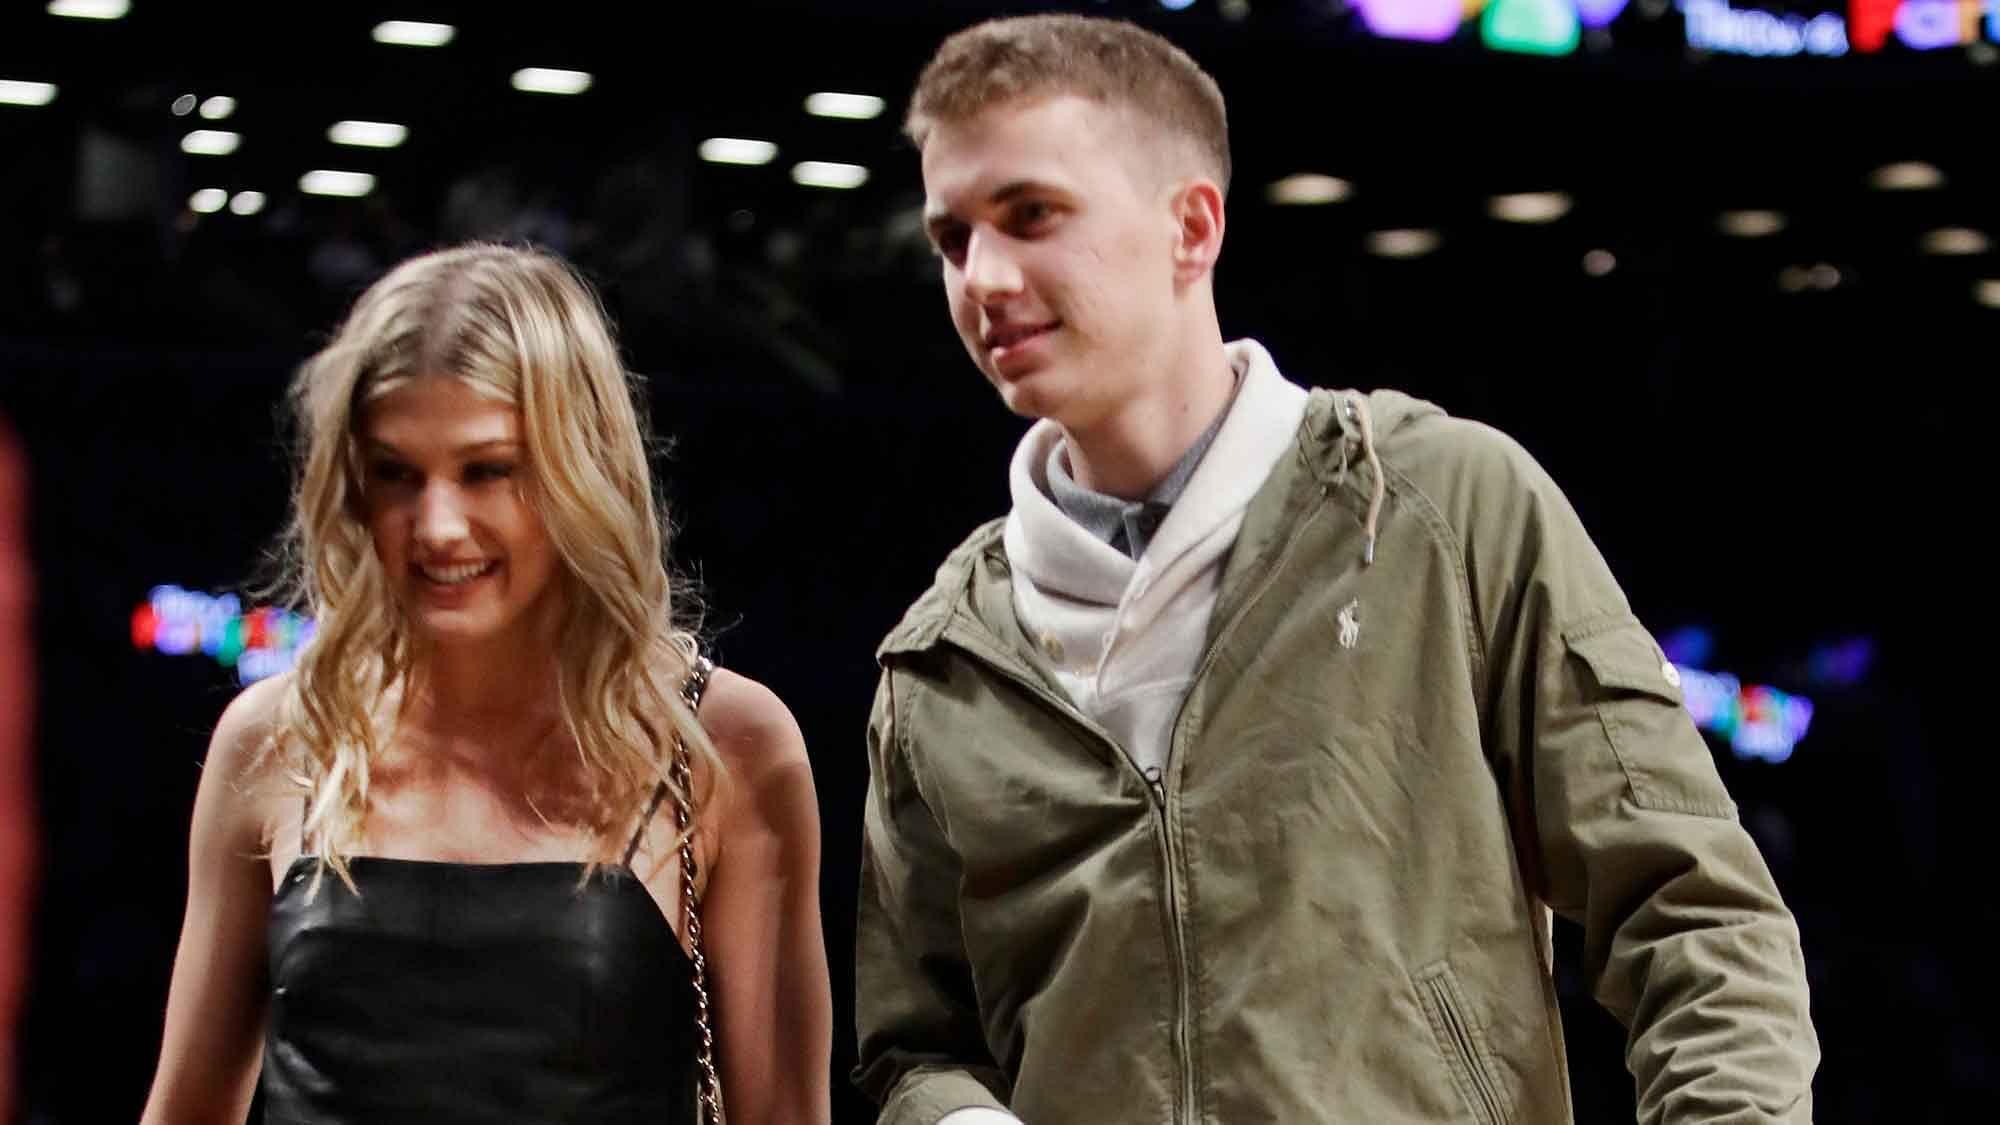 Tennis Star Eugenie Bouchard Goes on Blind Date After